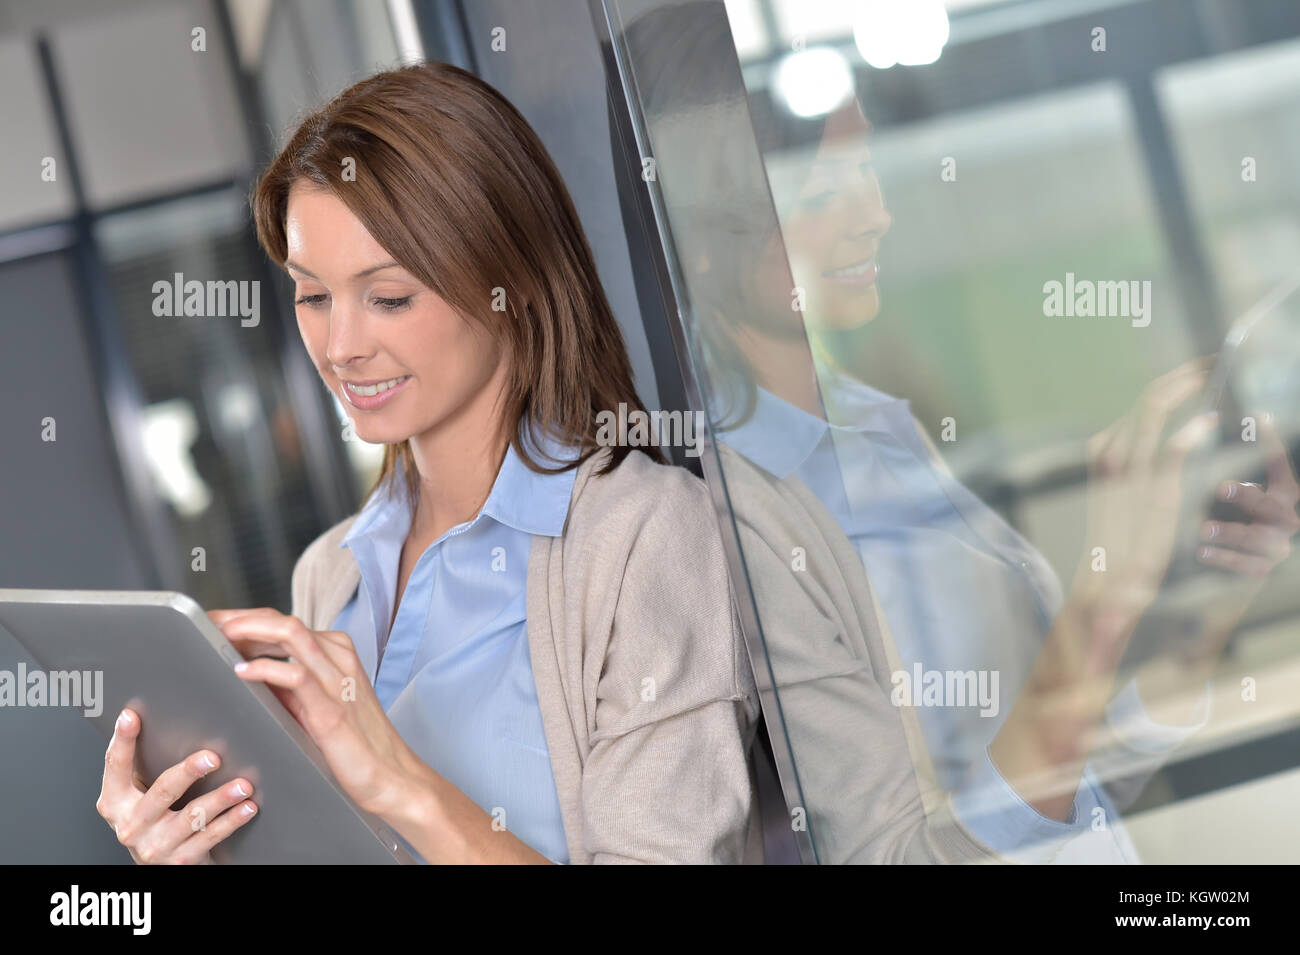 Ferra businesswoman on digital tablet Photo Stock